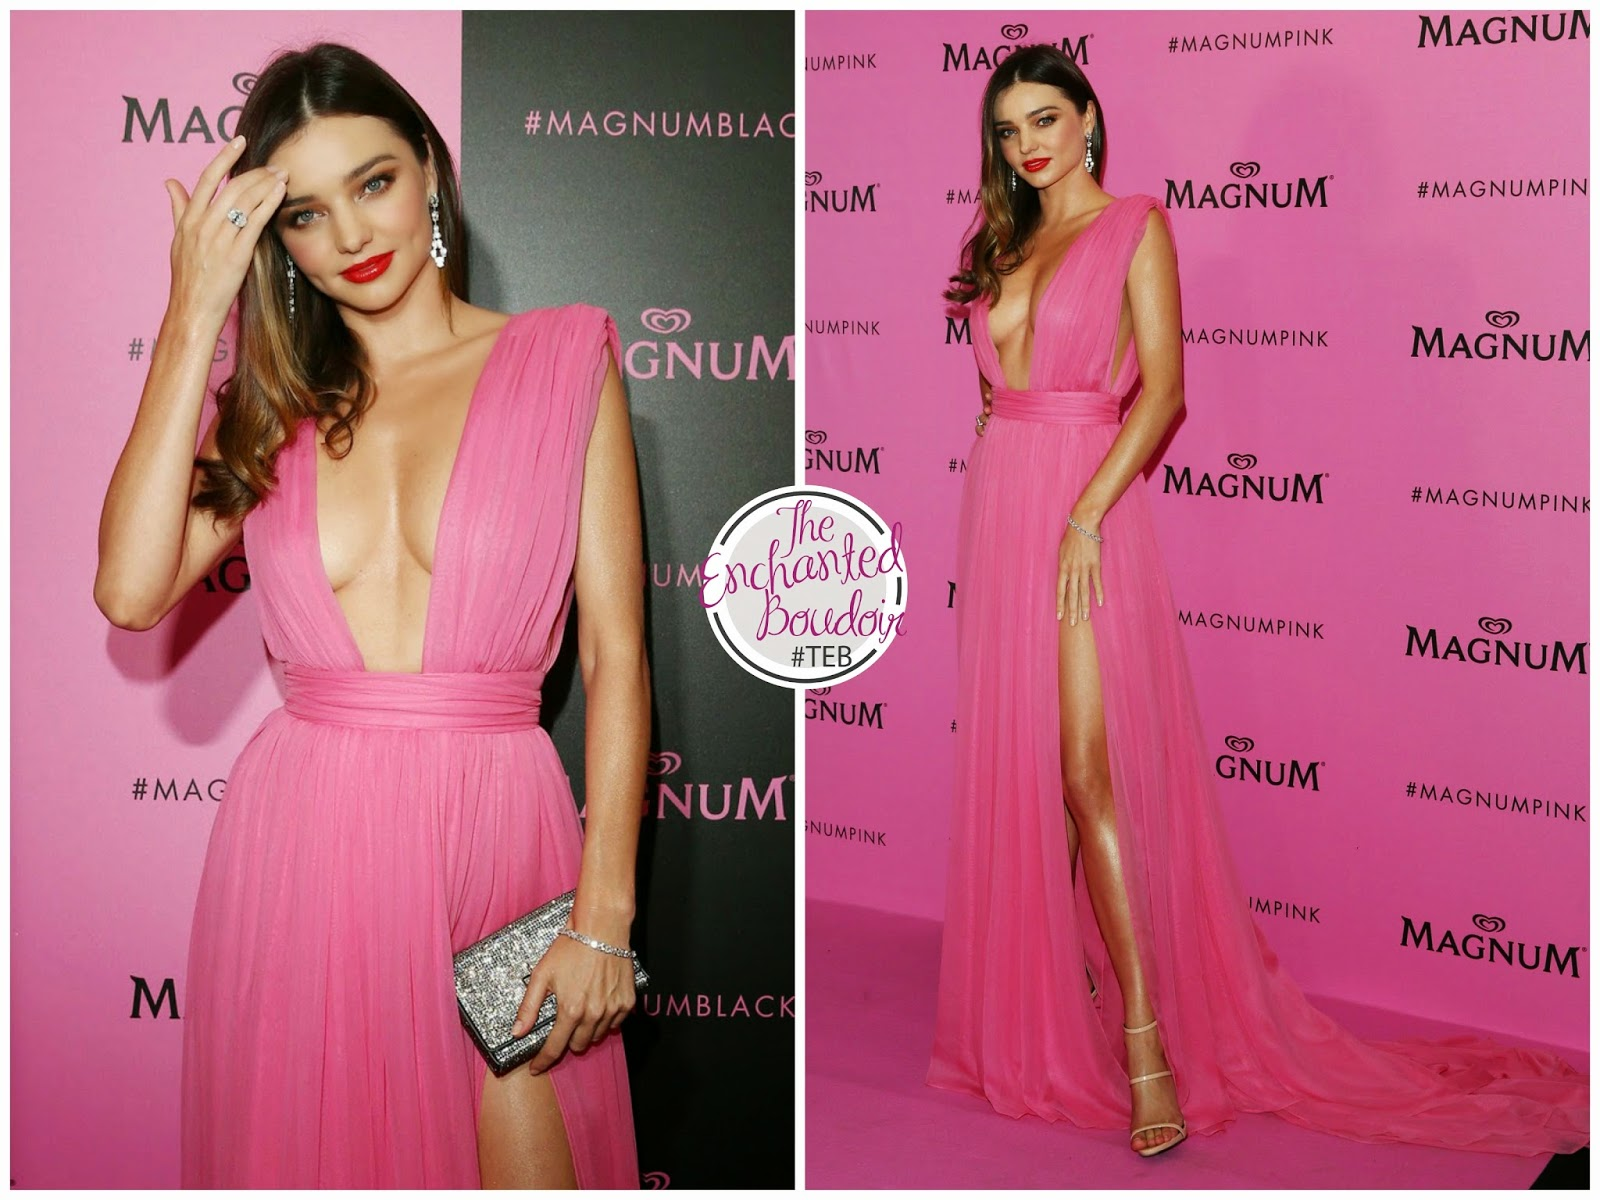 Magnum 'Pink & Black' launch party